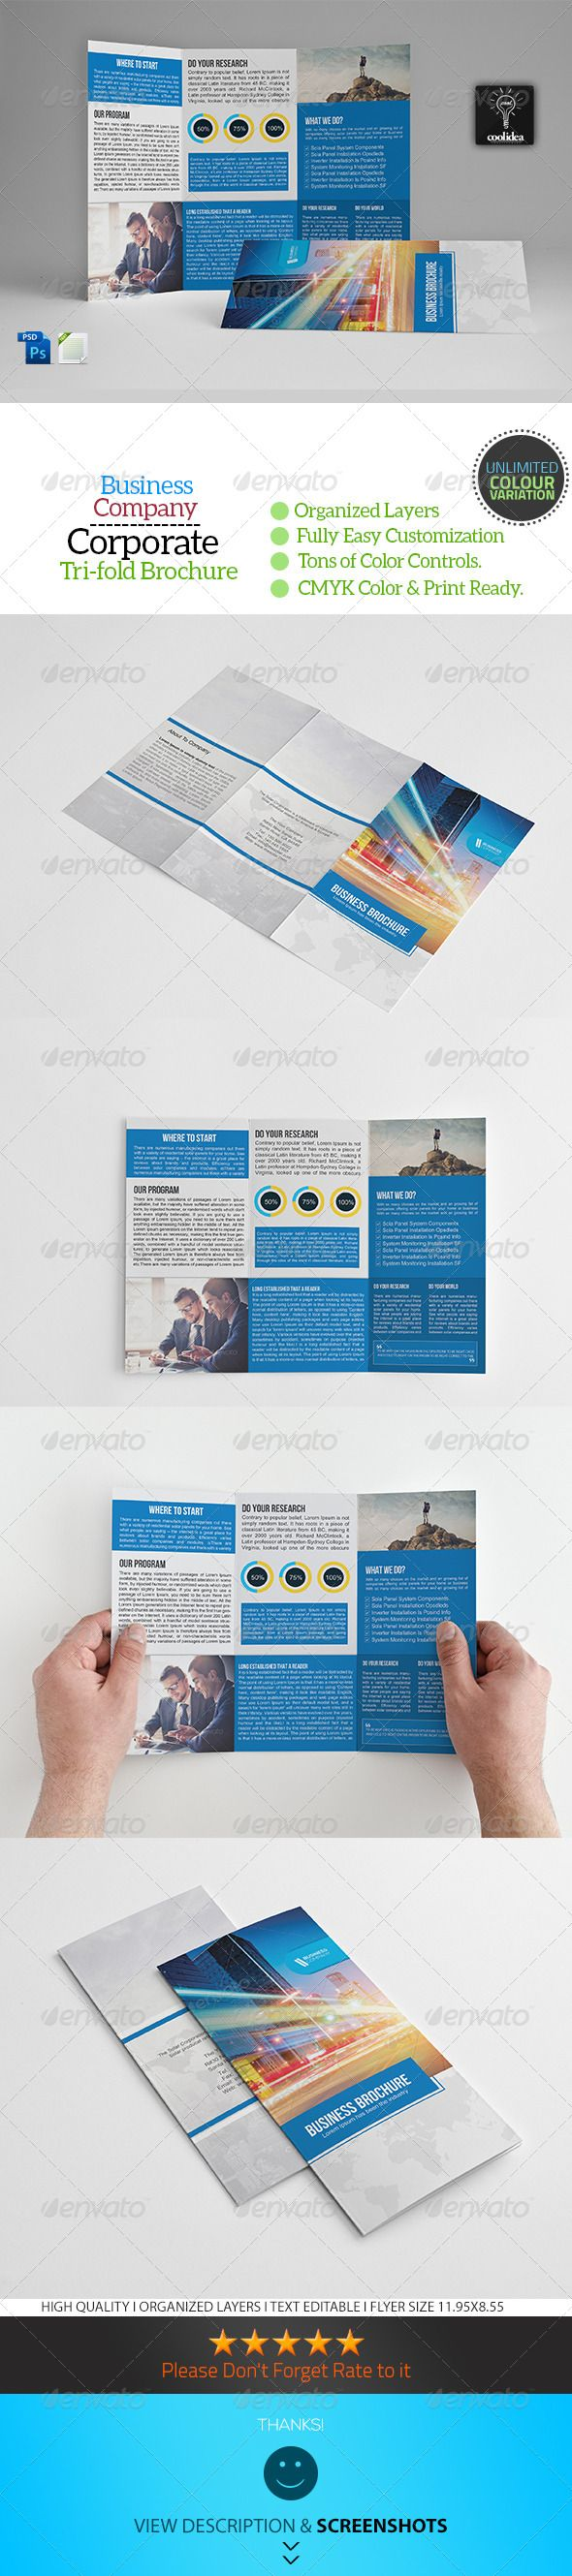 Best Trifold Brochure Template PSD Images On Pinterest - A4 tri fold brochure template